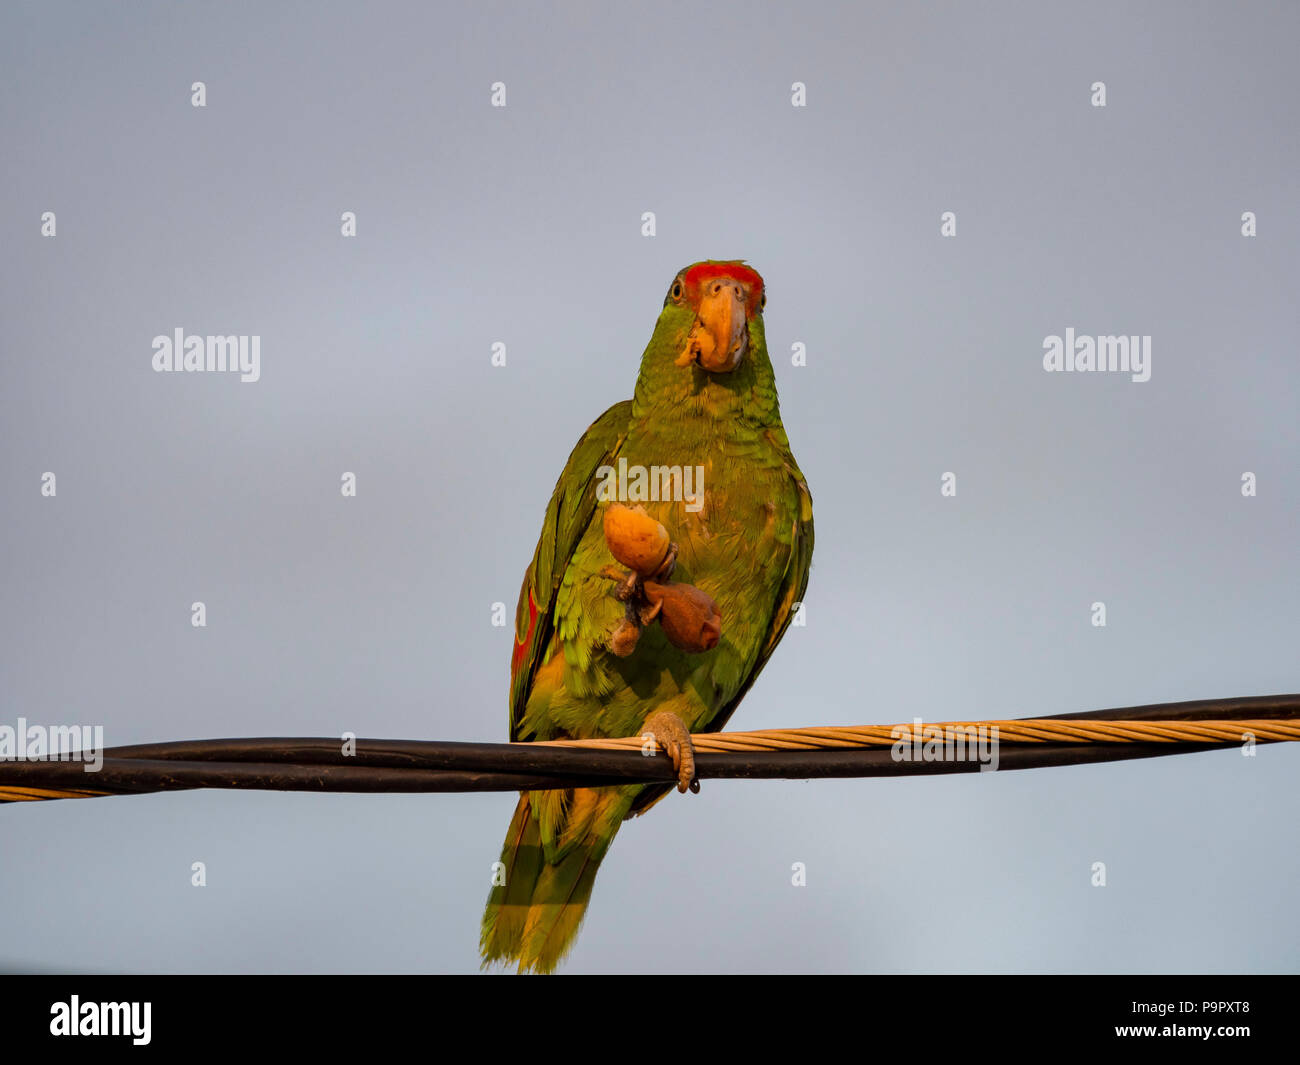 Chinese Parrot Stock Photos & Chinese Parrot Stock Images